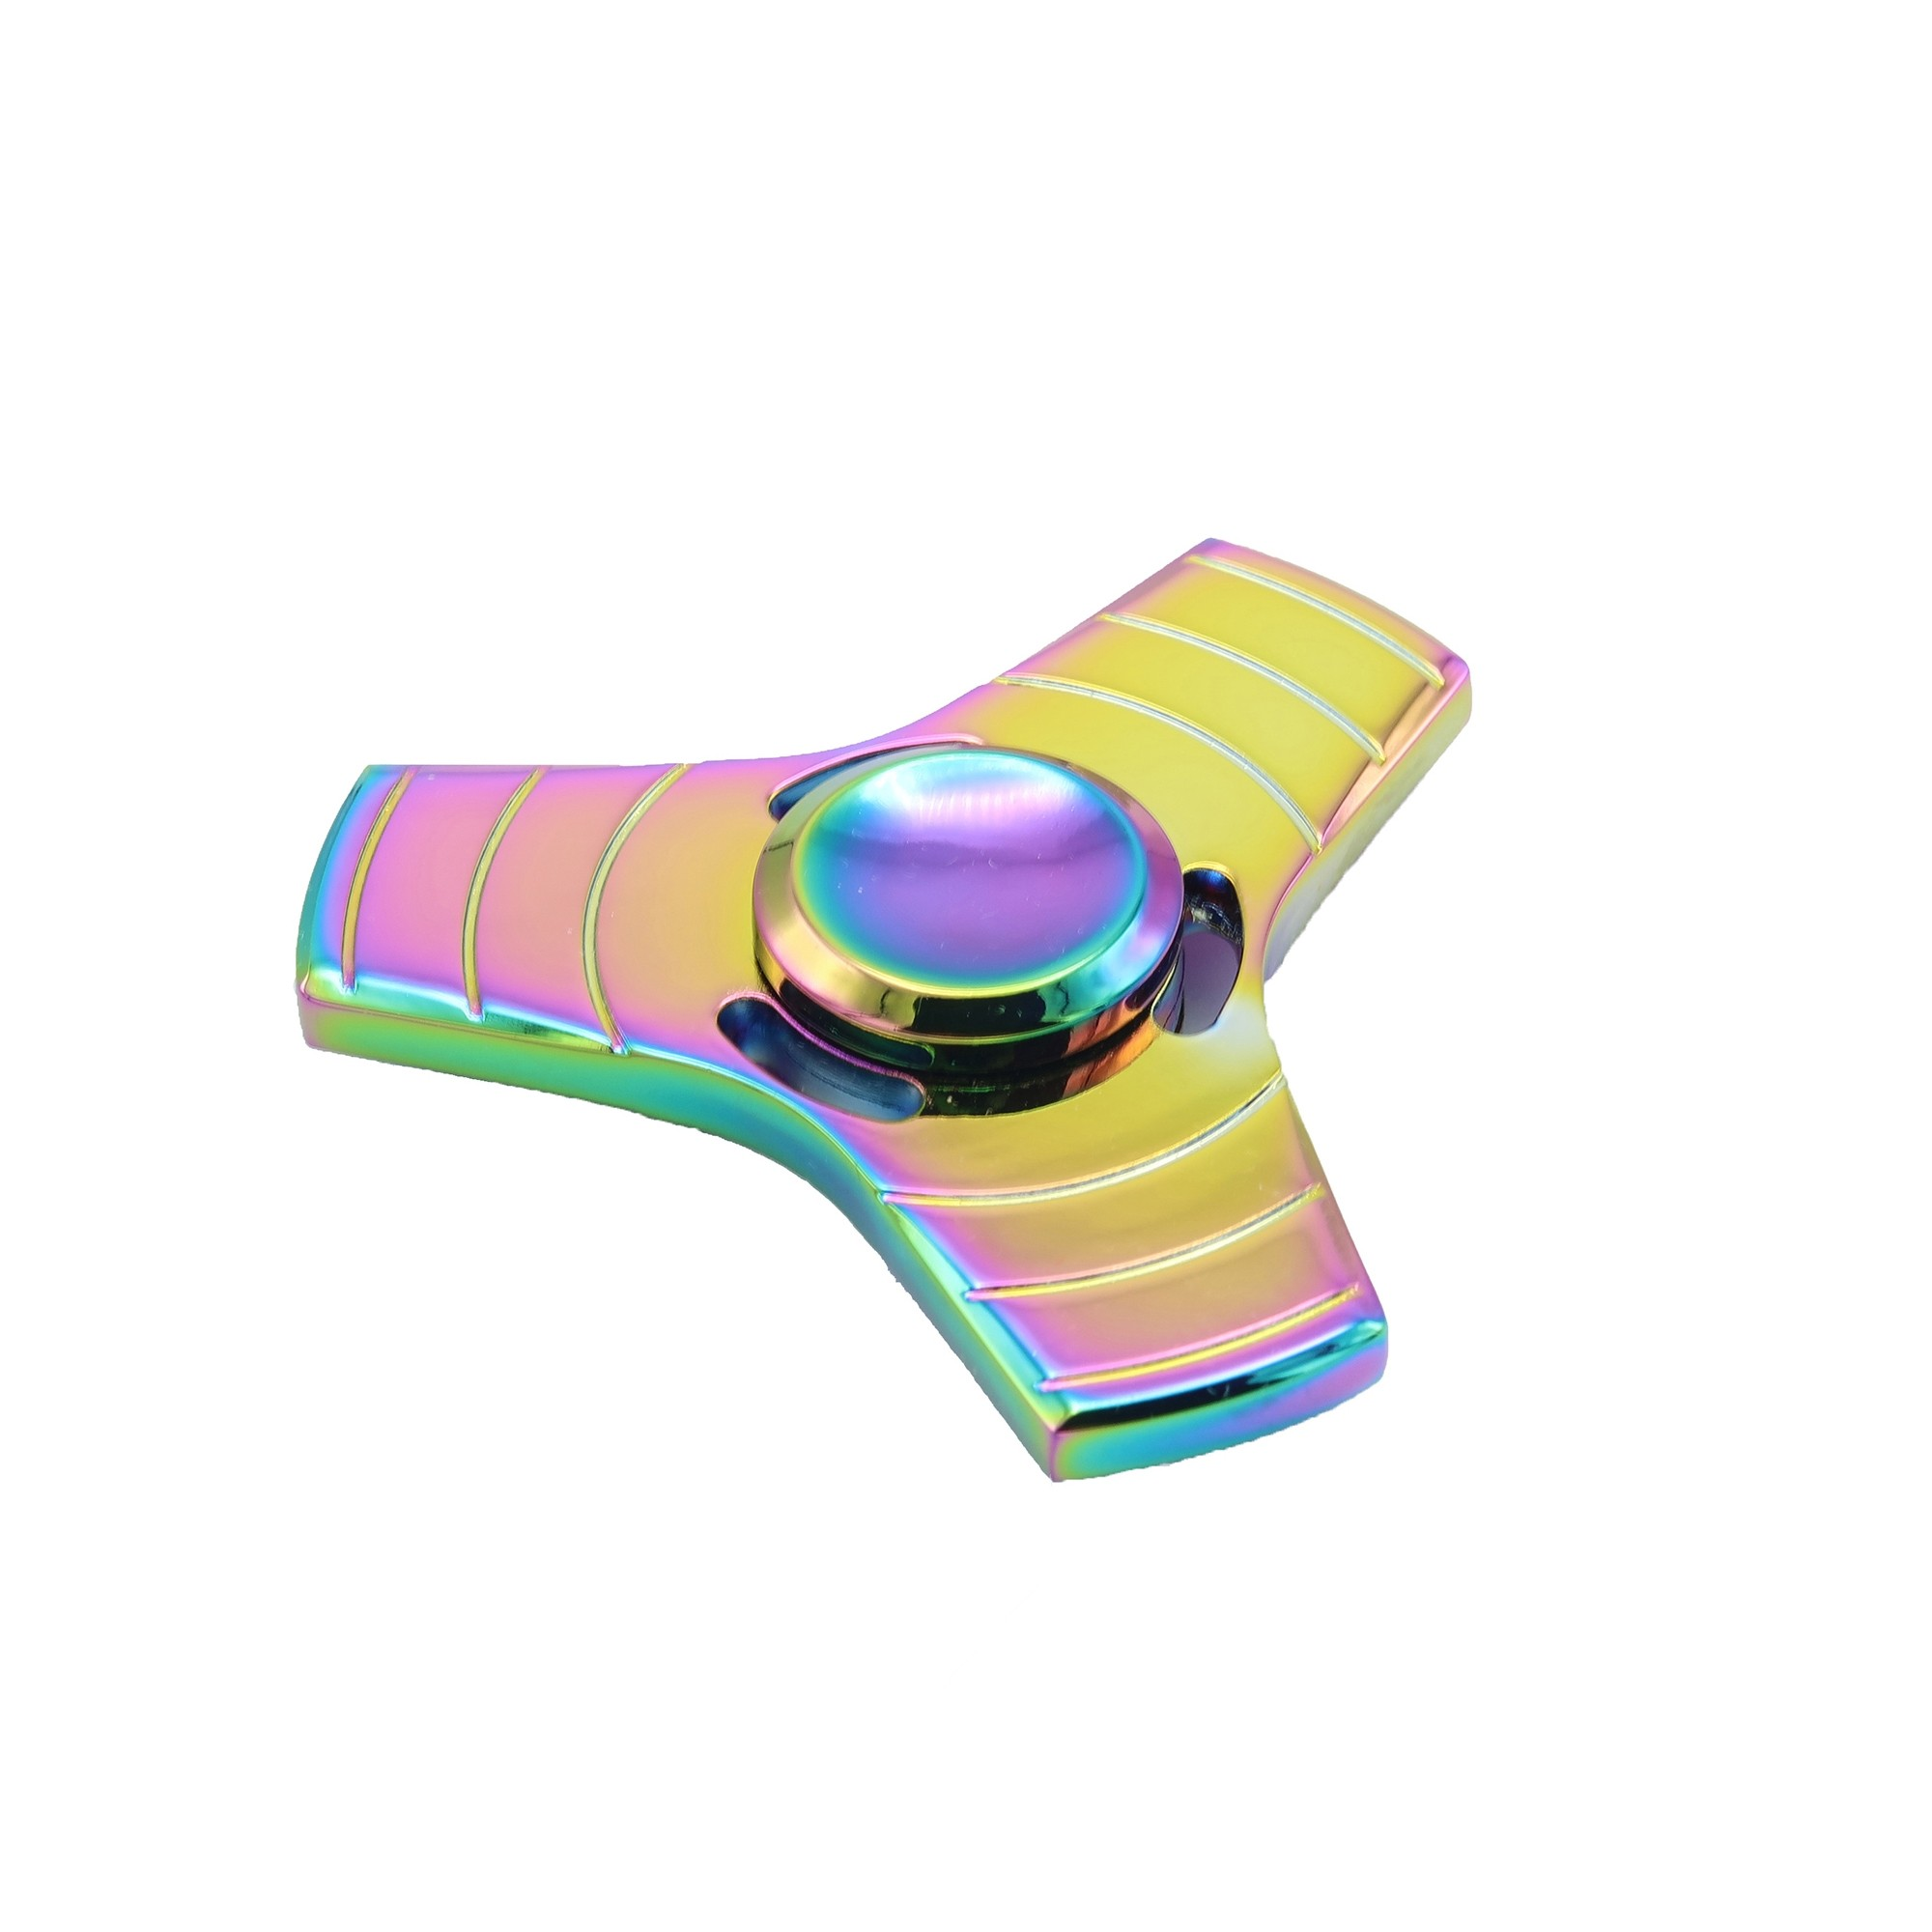 Rainbow Aluminum Metal Tri Fidget Spinner for Anxiety & Stress Relief (3 Fidget Spinner/Lot)